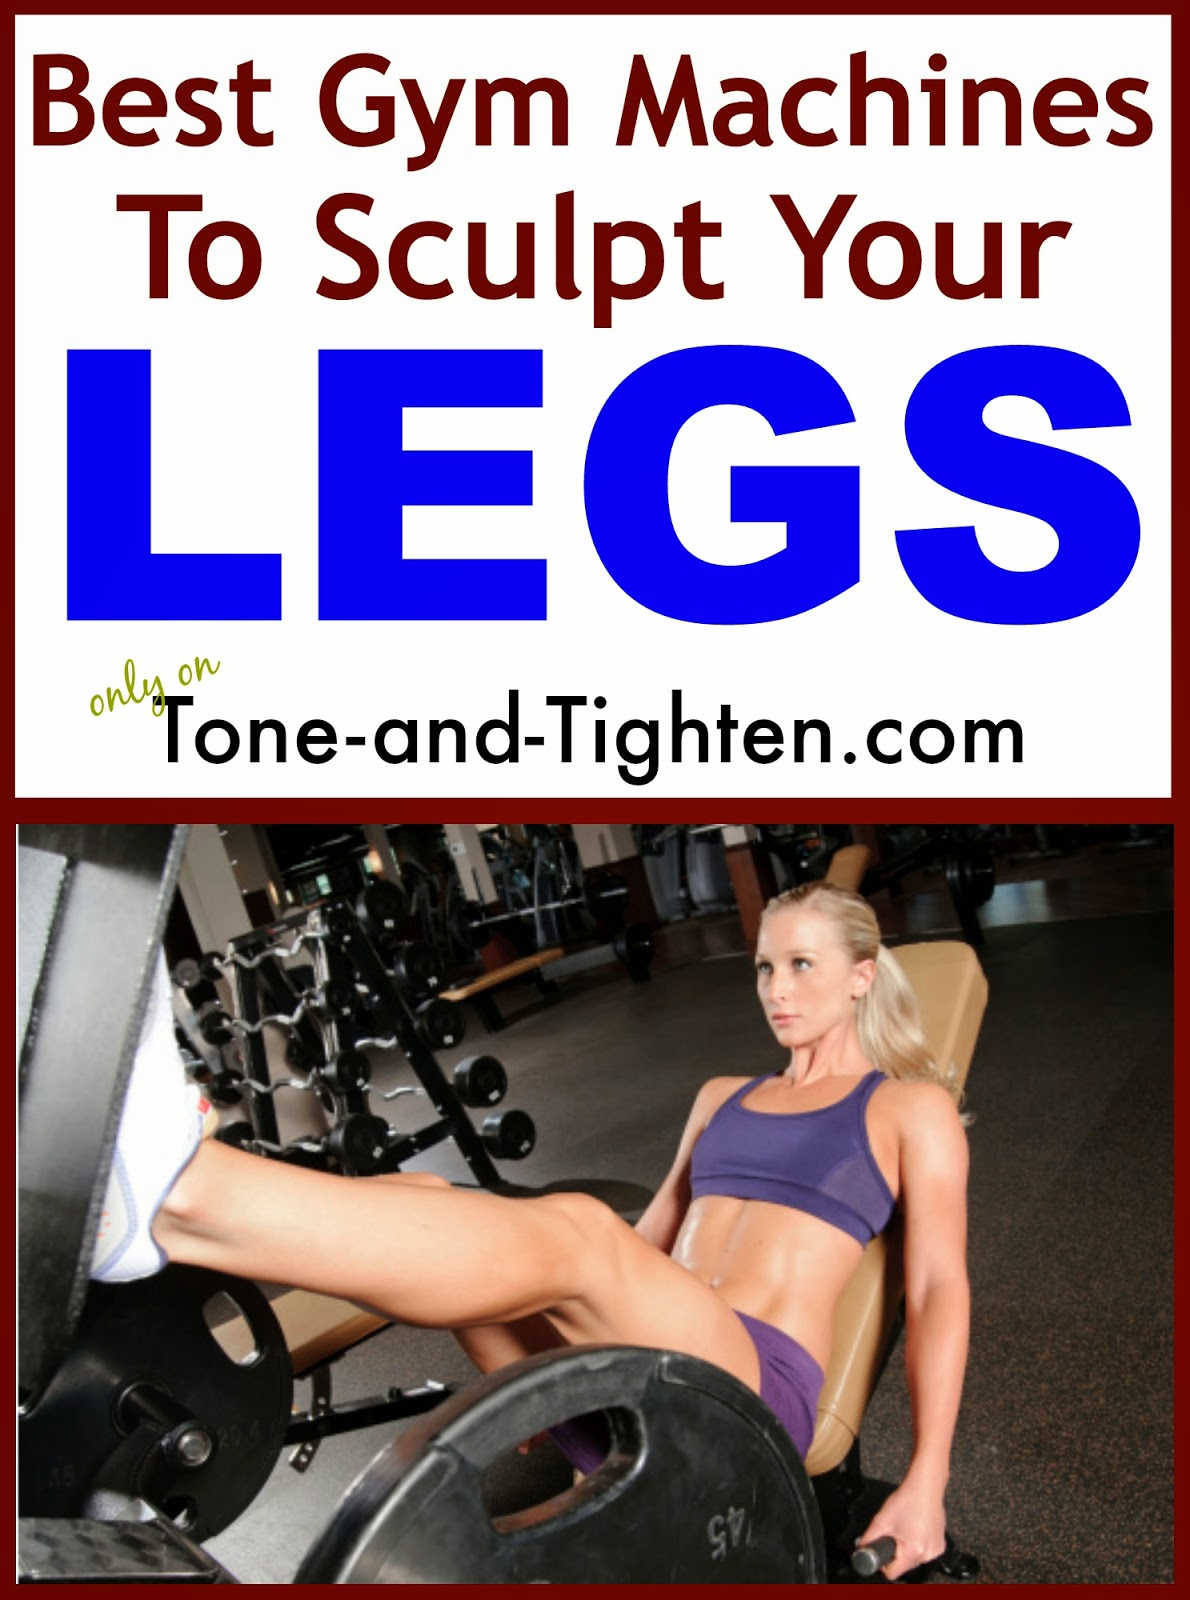 http://tone-and-tighten.com/2014/03/get-toned-sculpted-strong-legs-now-best-gym-machines-for-your-legs.html